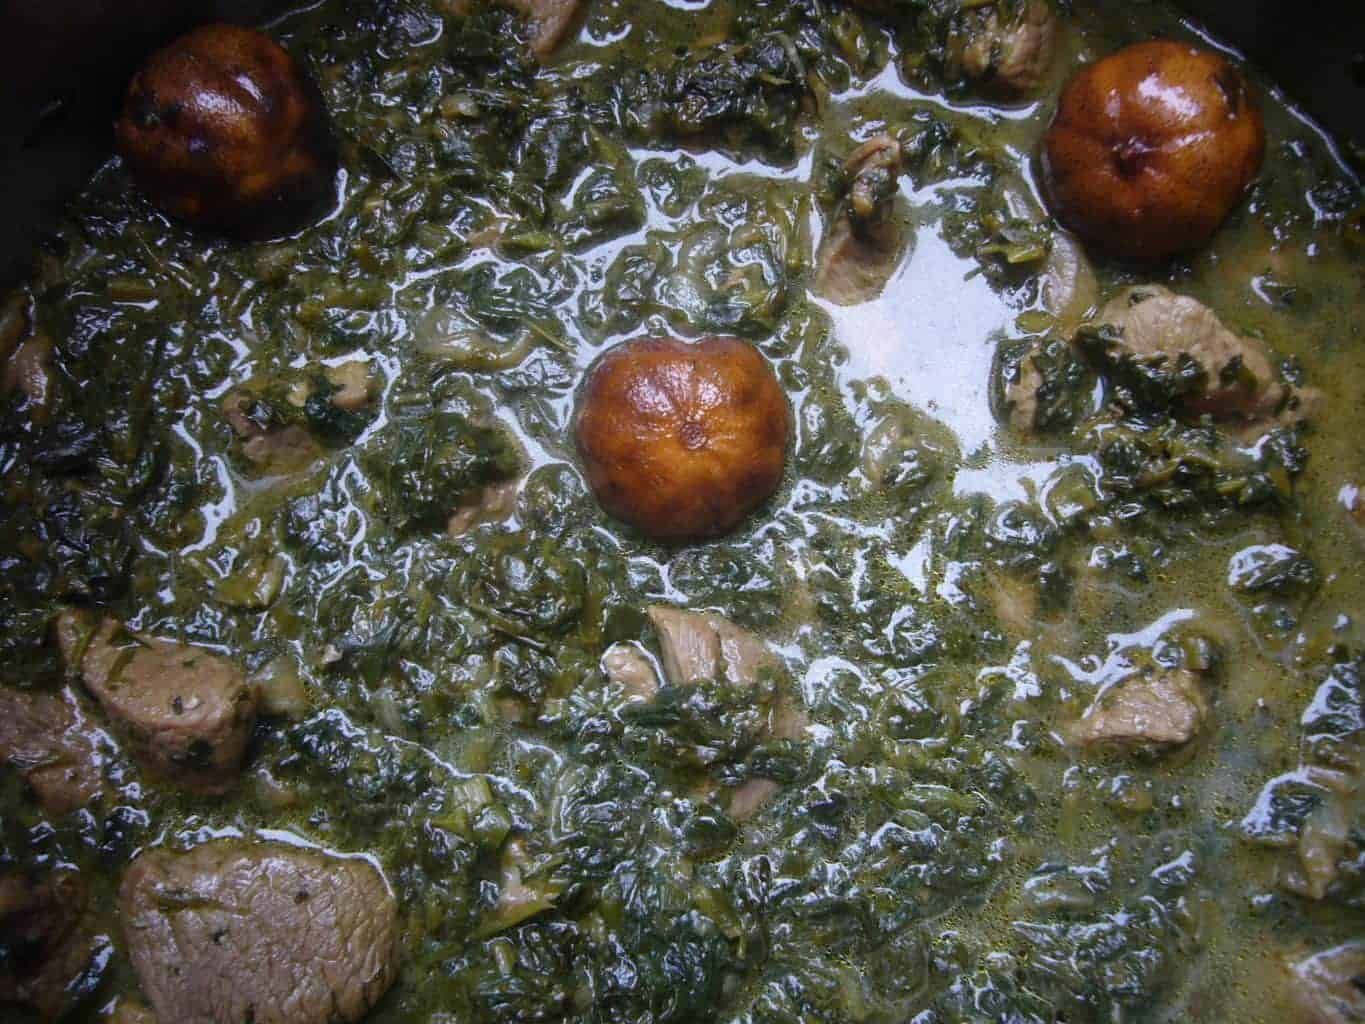 Ghormeh sabzi with dried limes cooking in a pot.